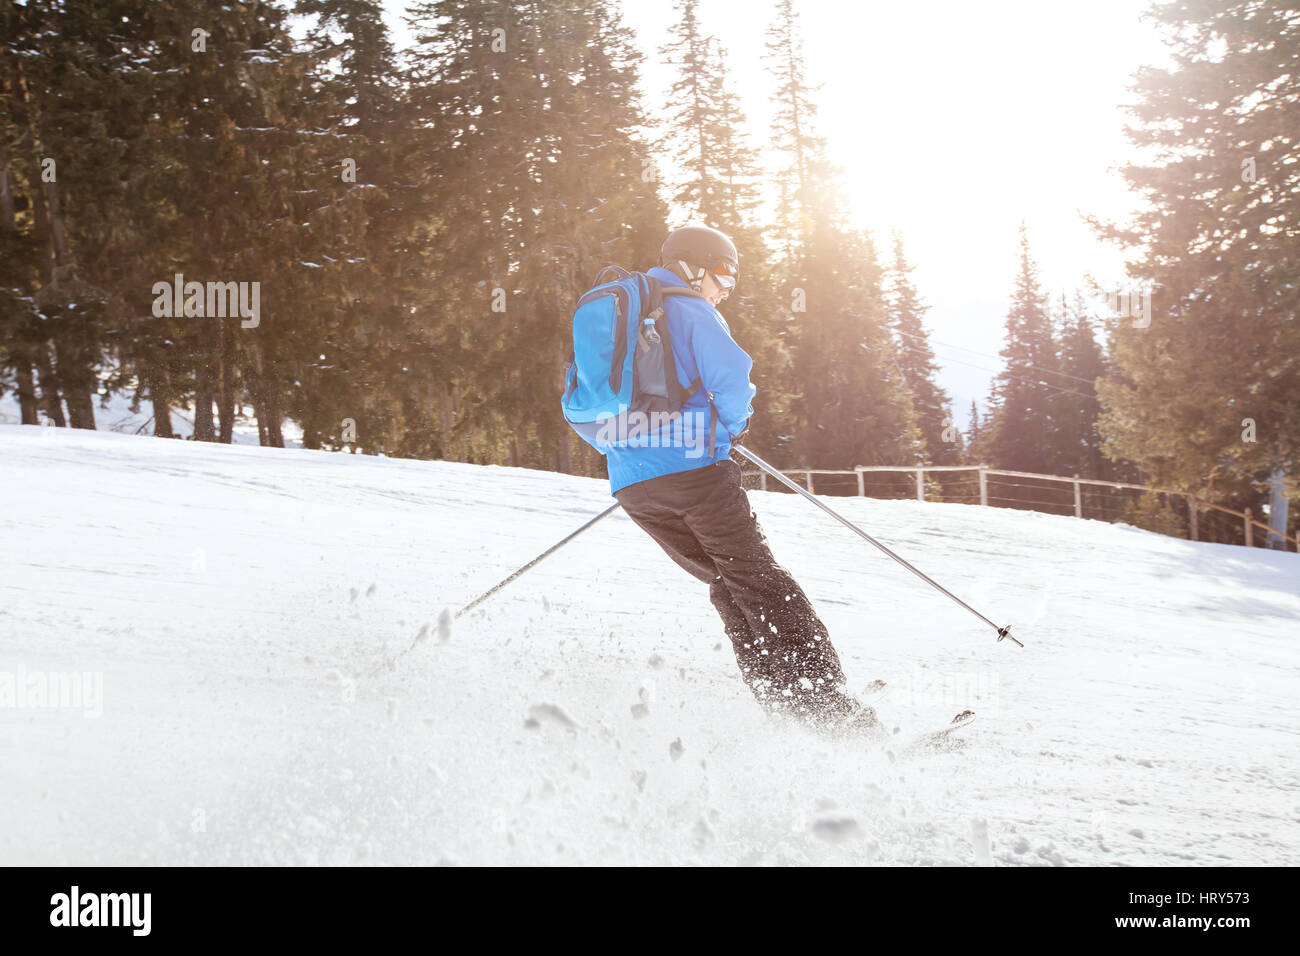 downhill skiing at sunset, beautiful skier in motion - Stock Image